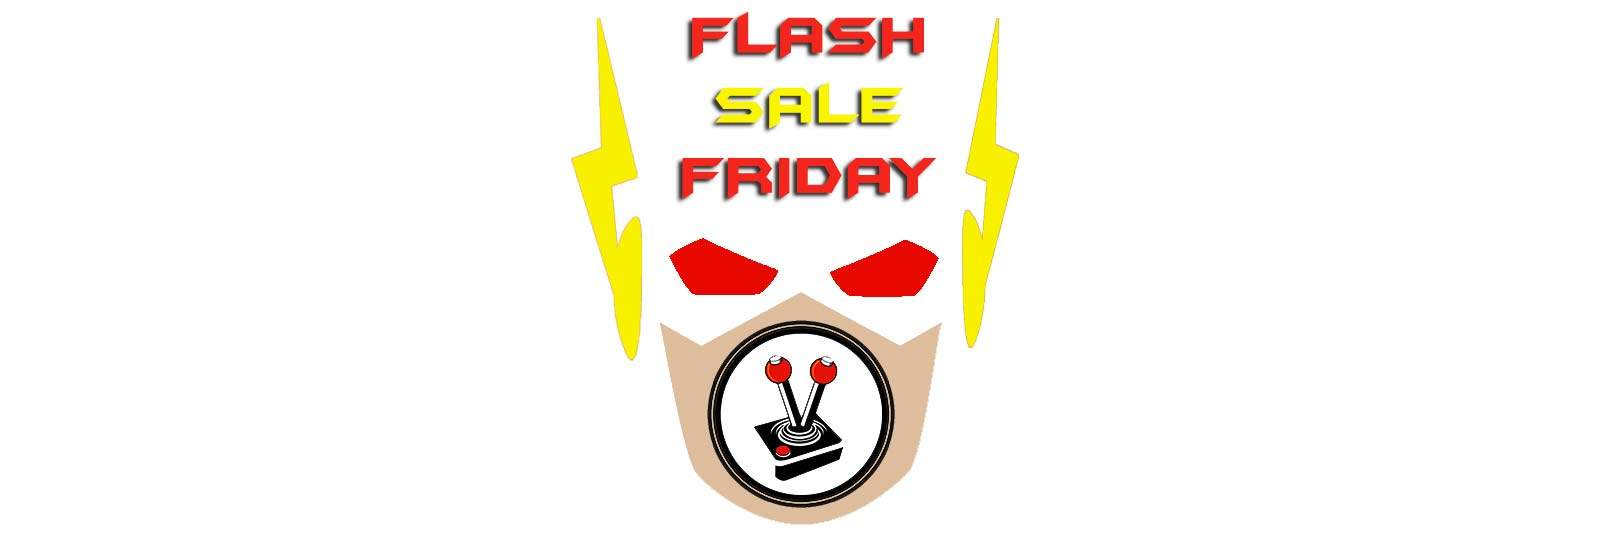 The Vamers Store Flash Sale Friday Event is Coming!